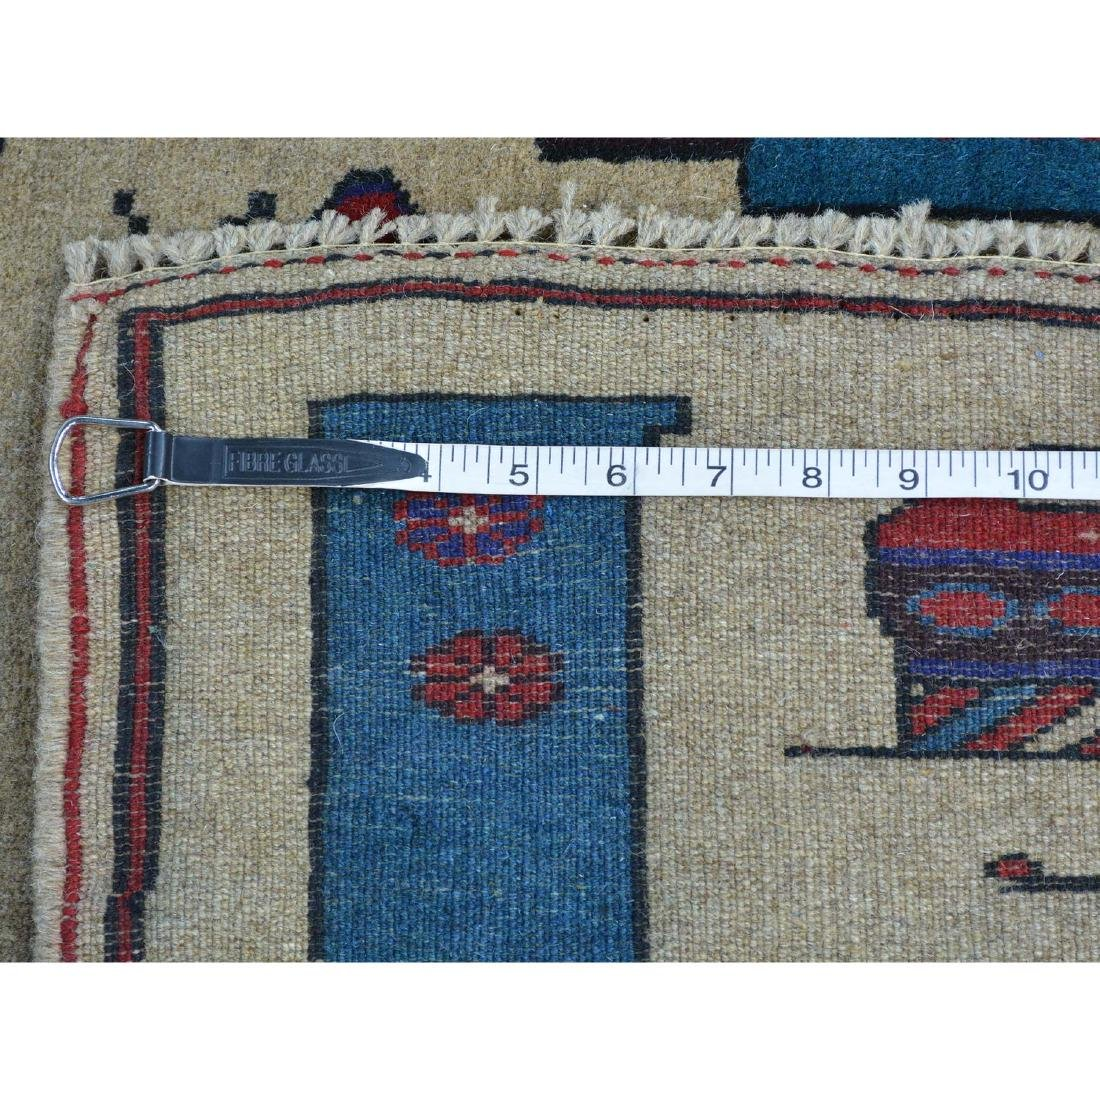 Hand Knotted Afghan Baluch War Tank Grenade Rug 2.9x4.6 - 5